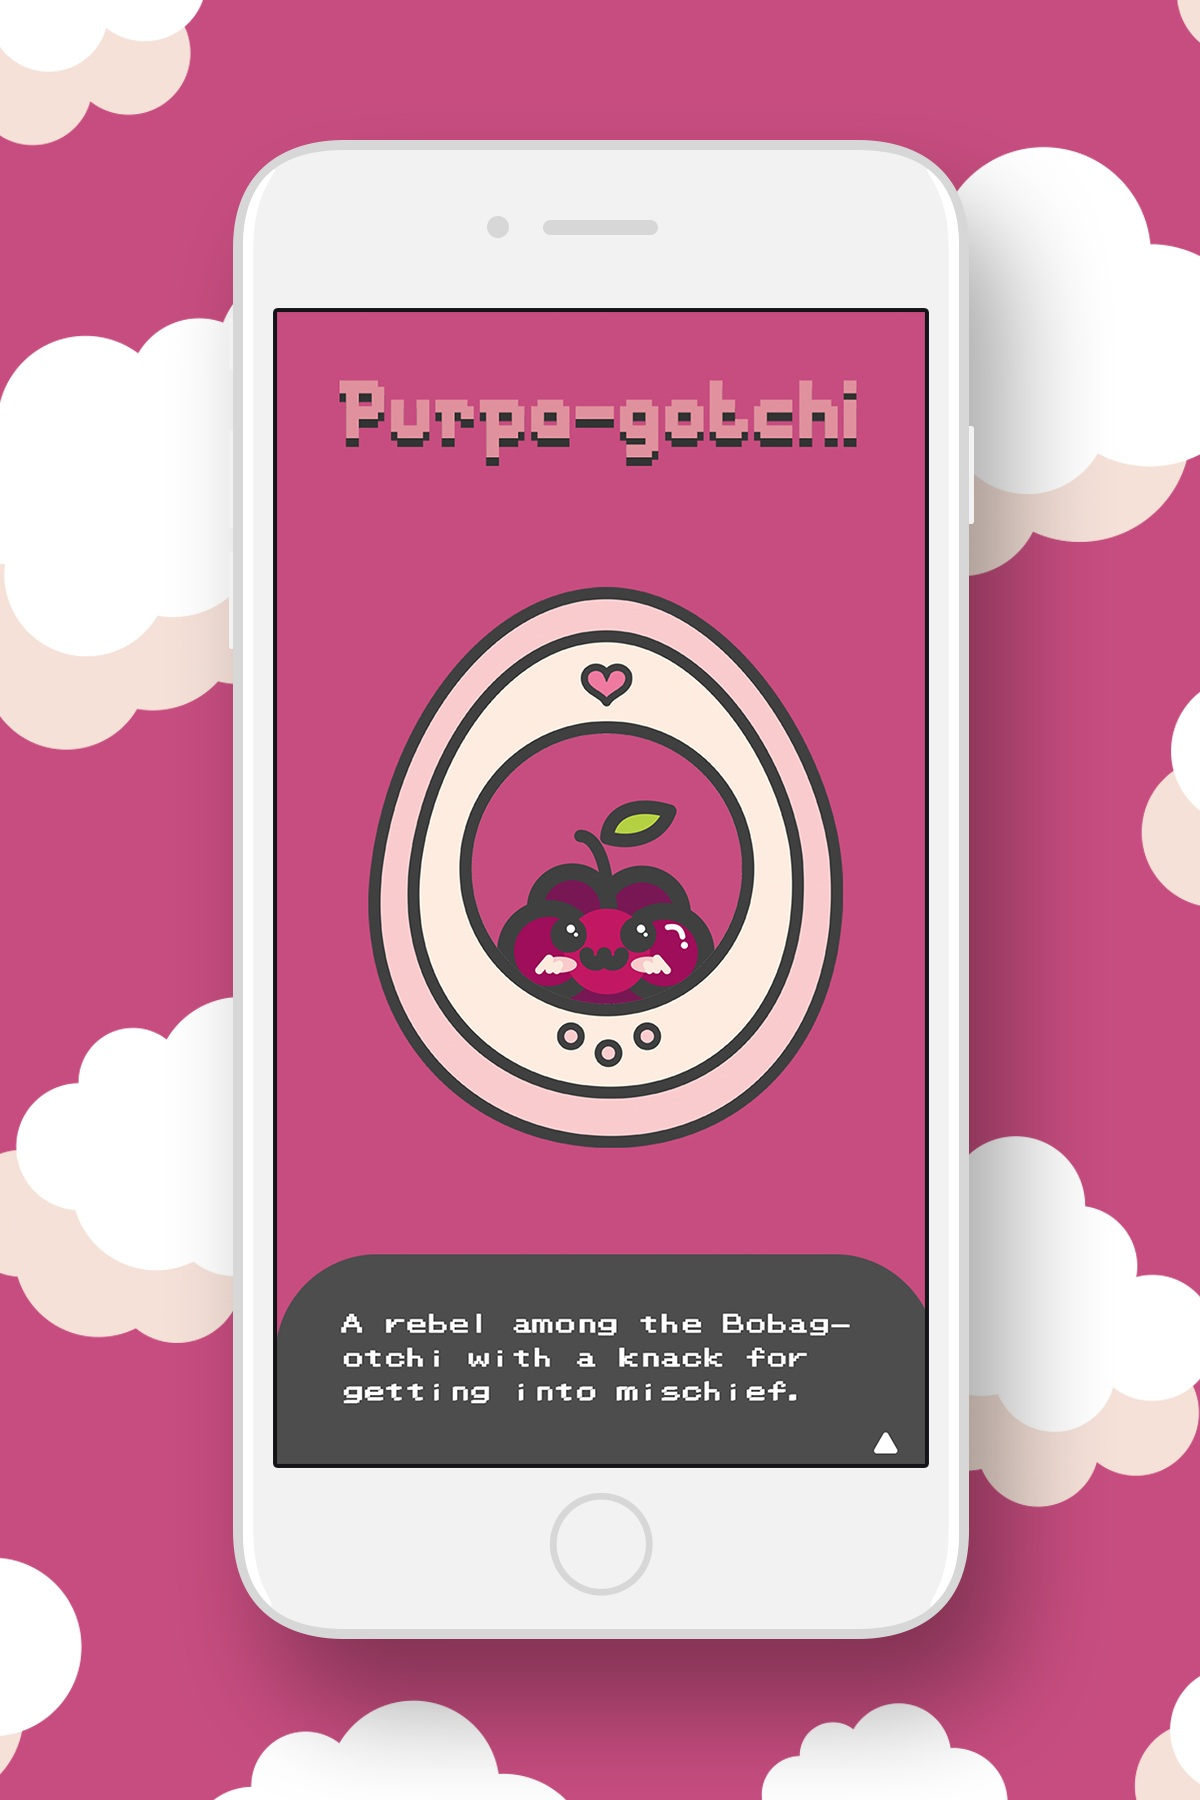 purpagotchi+with+background.jpg